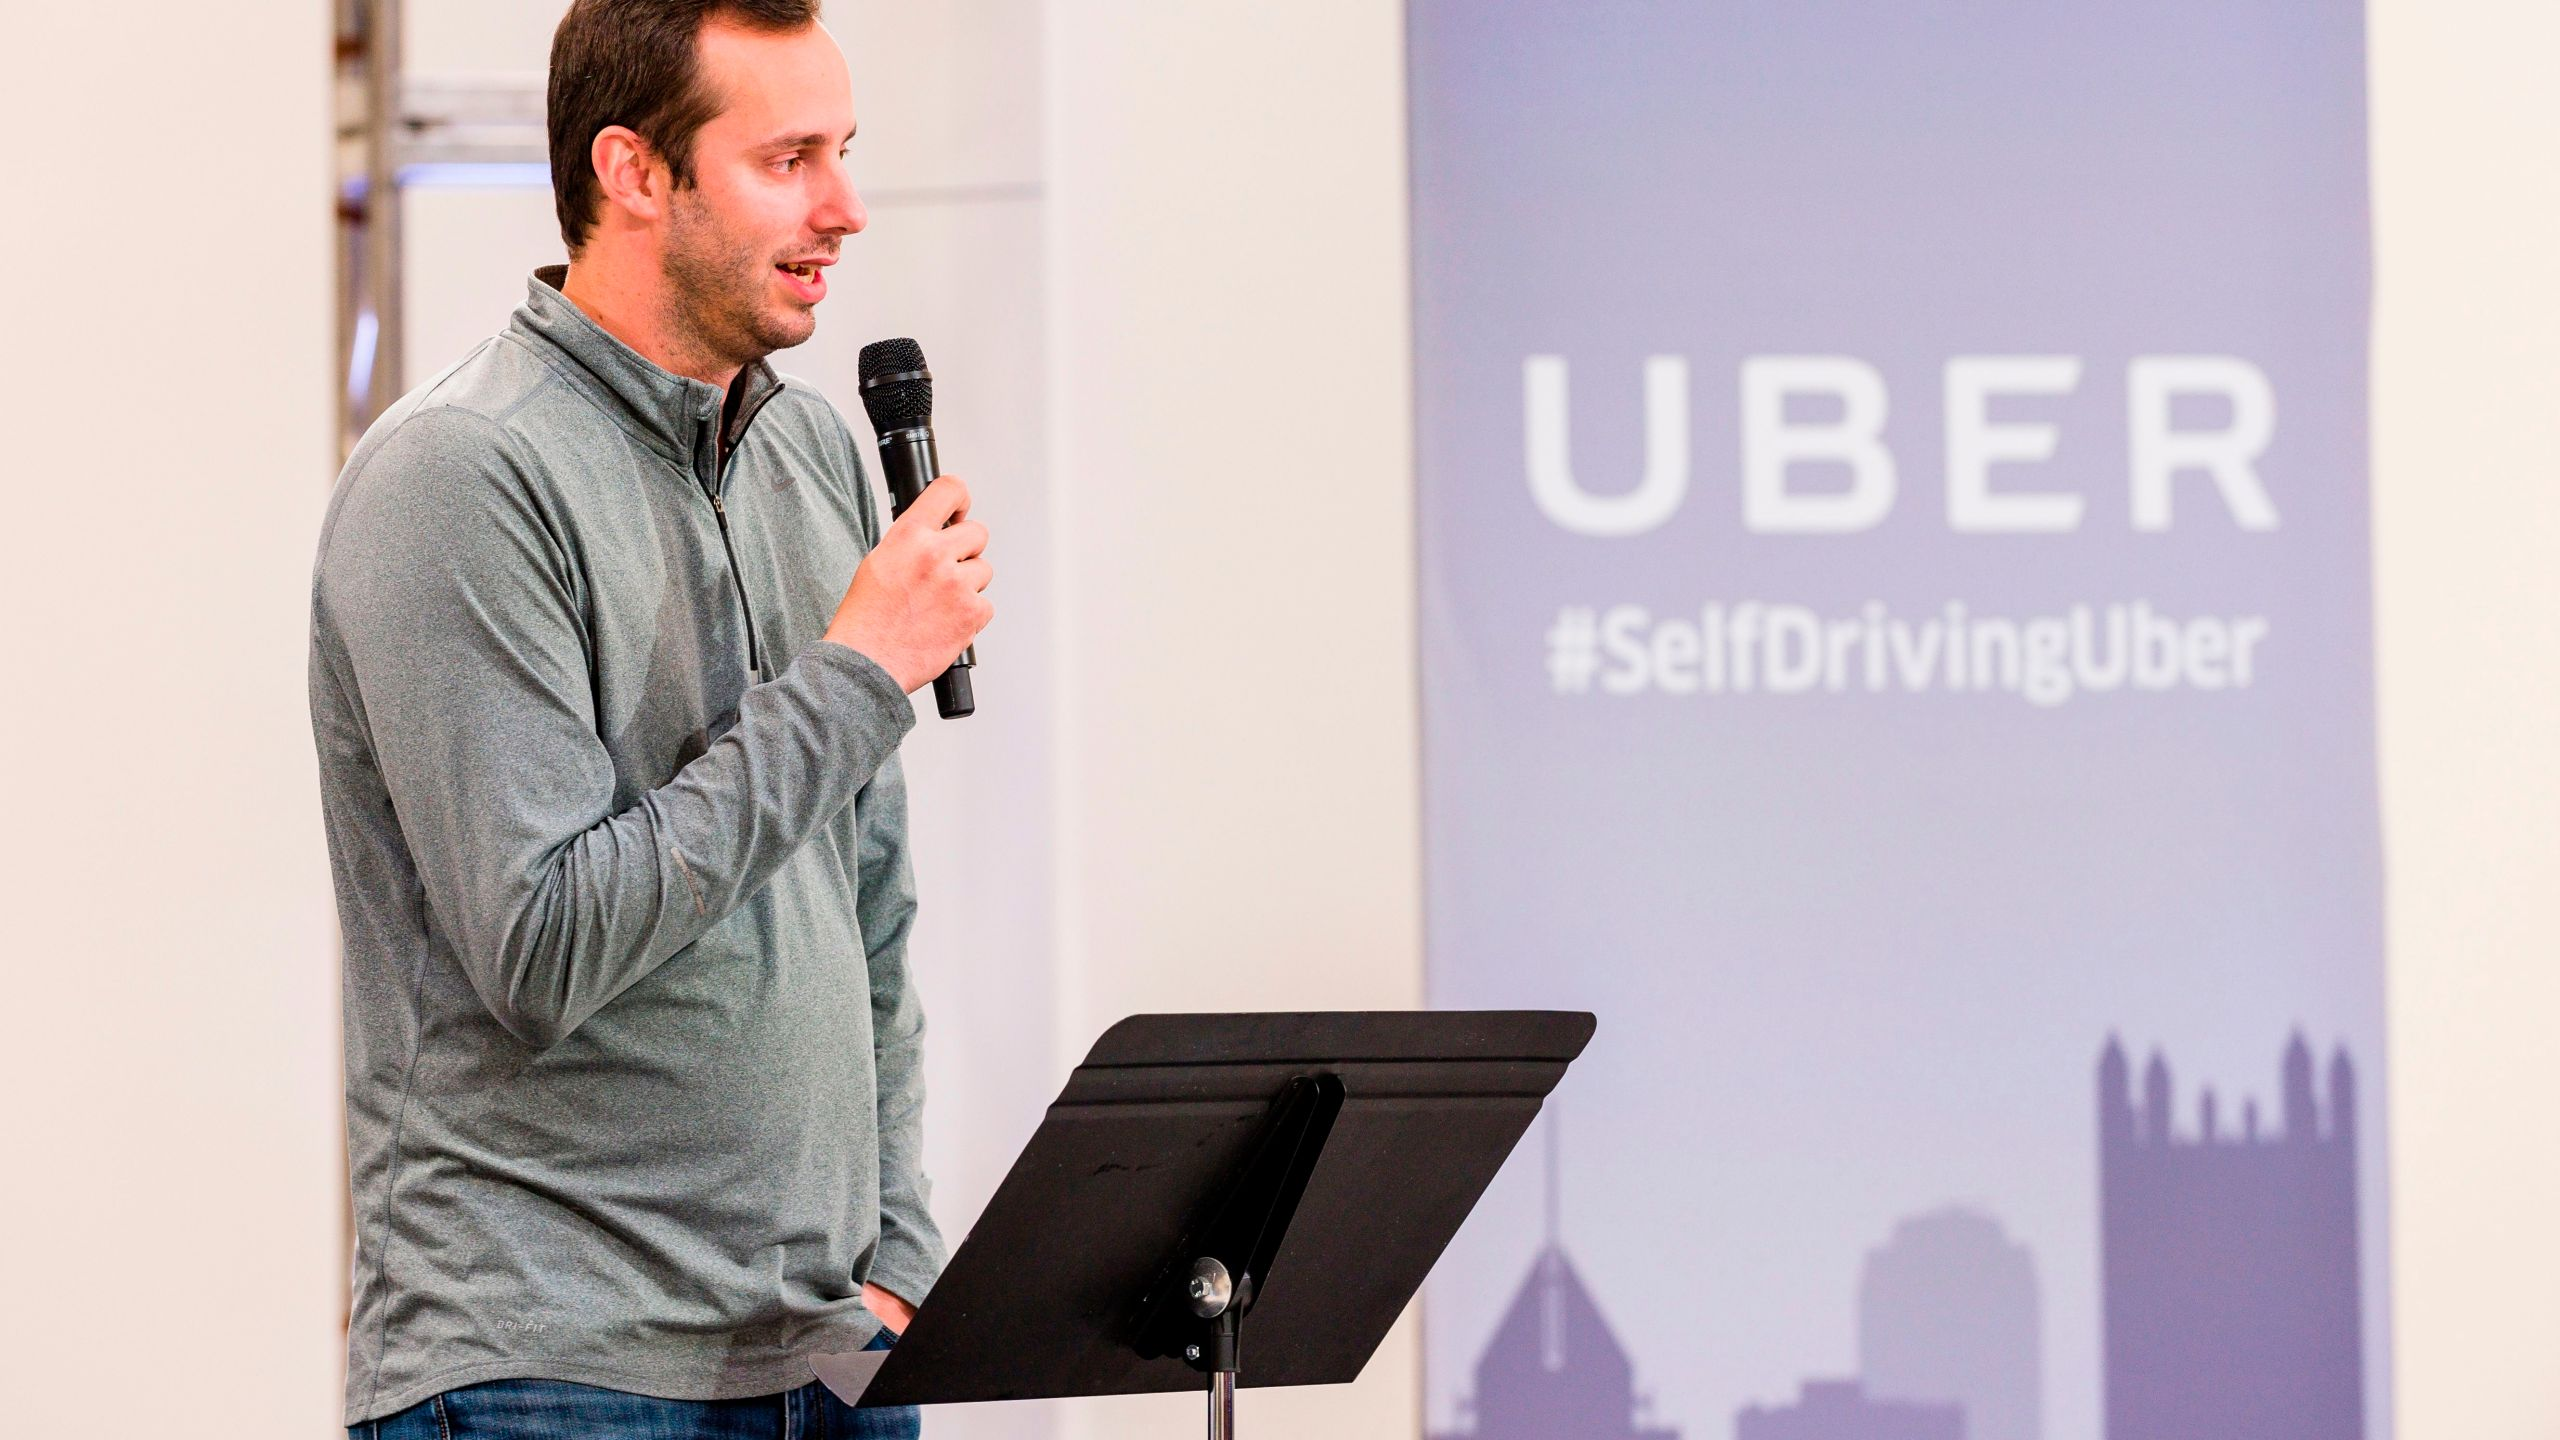 Anthony Levandowski speaks to members of the press during the launch of the pilot model of the Uber self-driving car in Pittsburgh, Pennsylvania, on Sept. 13, 2016. (Credit: Angelo Merendino / AFP / Getty Images)